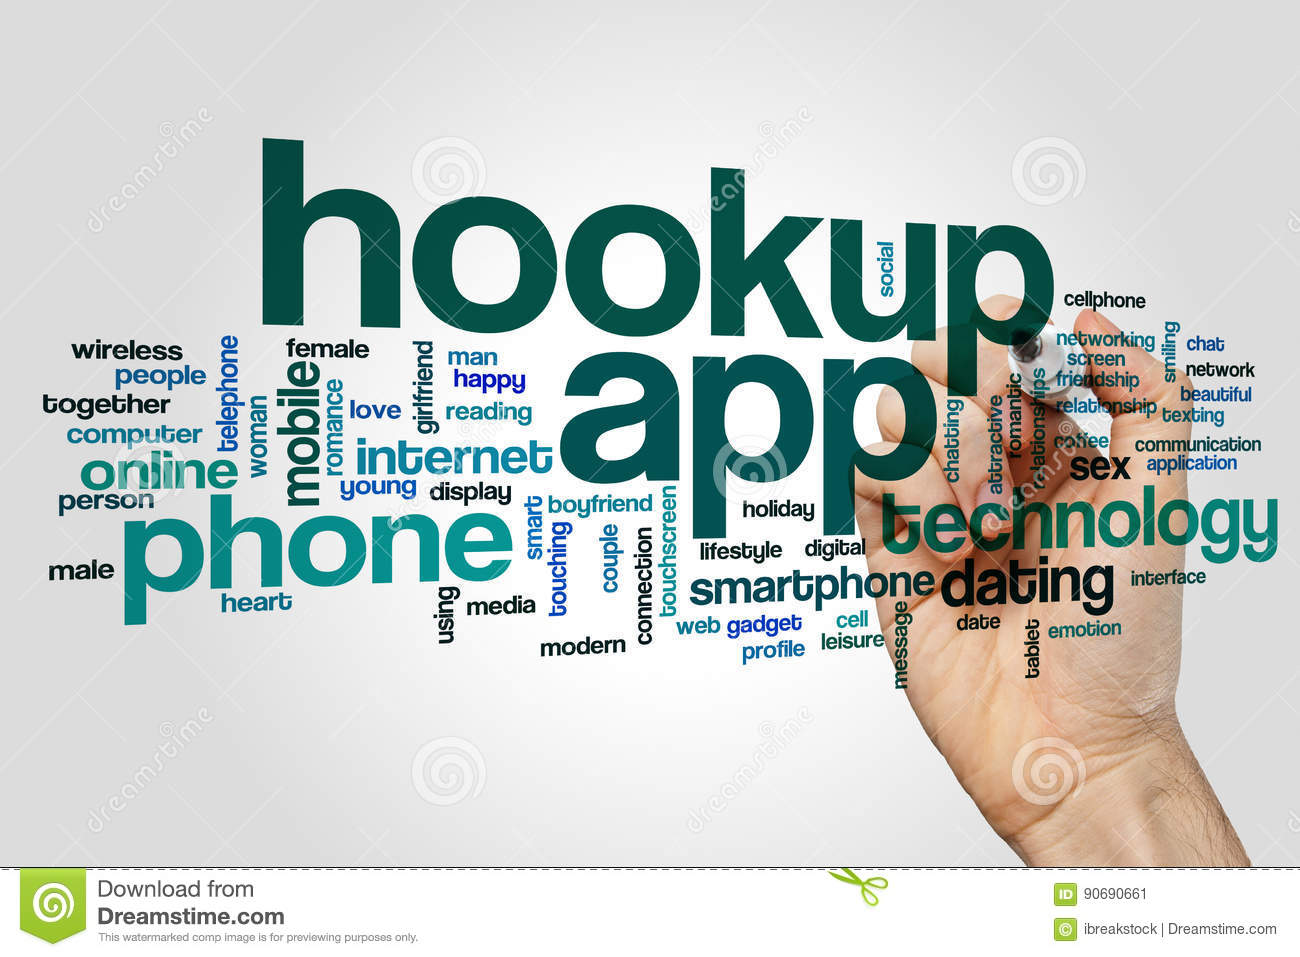 What is the concept of hookup